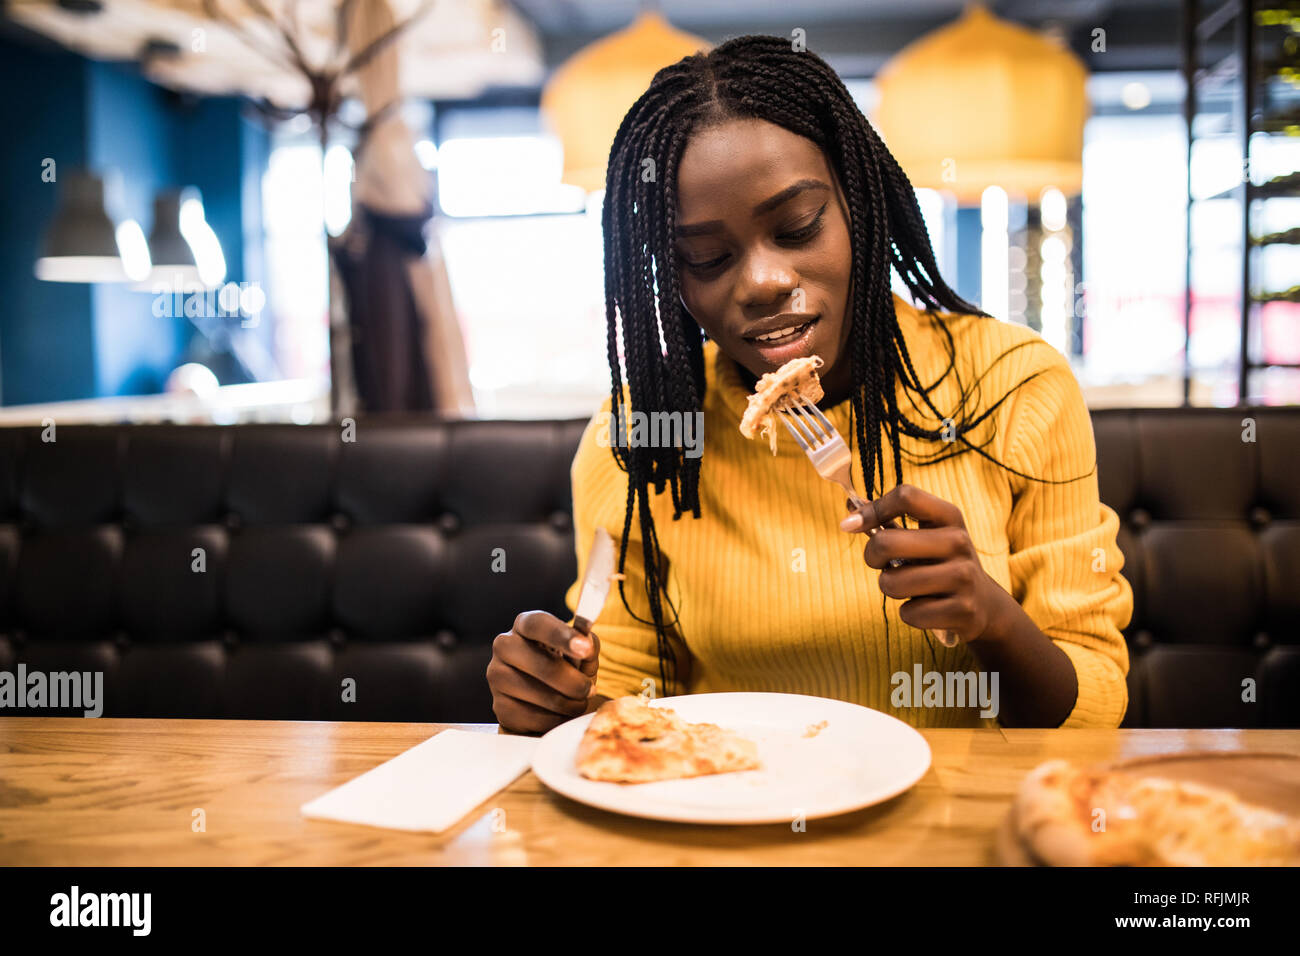 Young afro american woman wearing in yellow sweater eating pizza in cafe Stock Photo